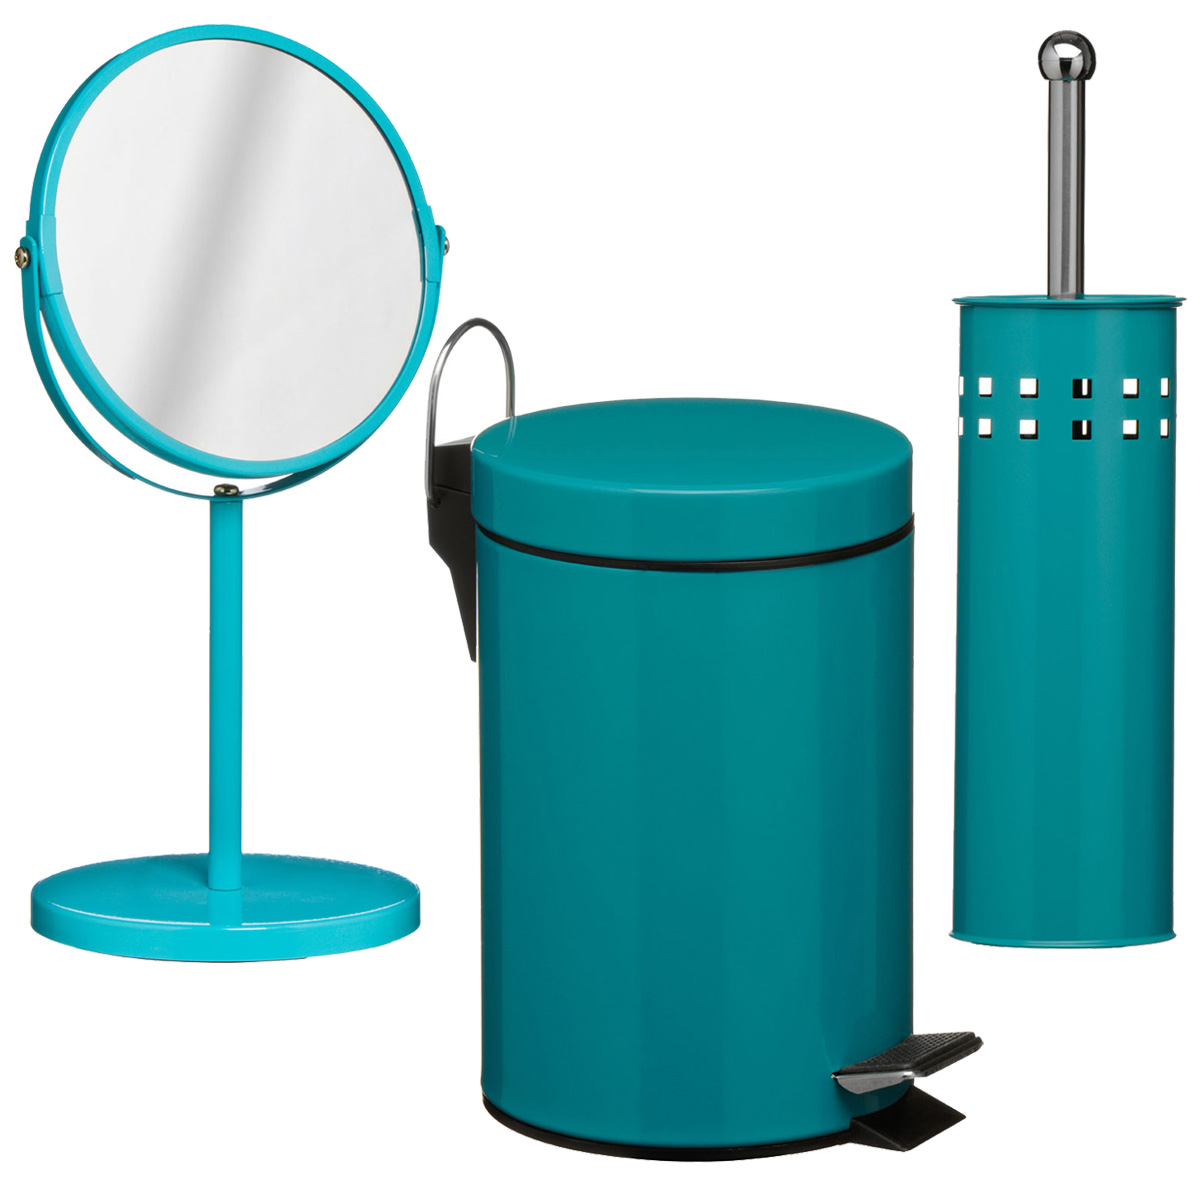 Teal Bathroom Bin